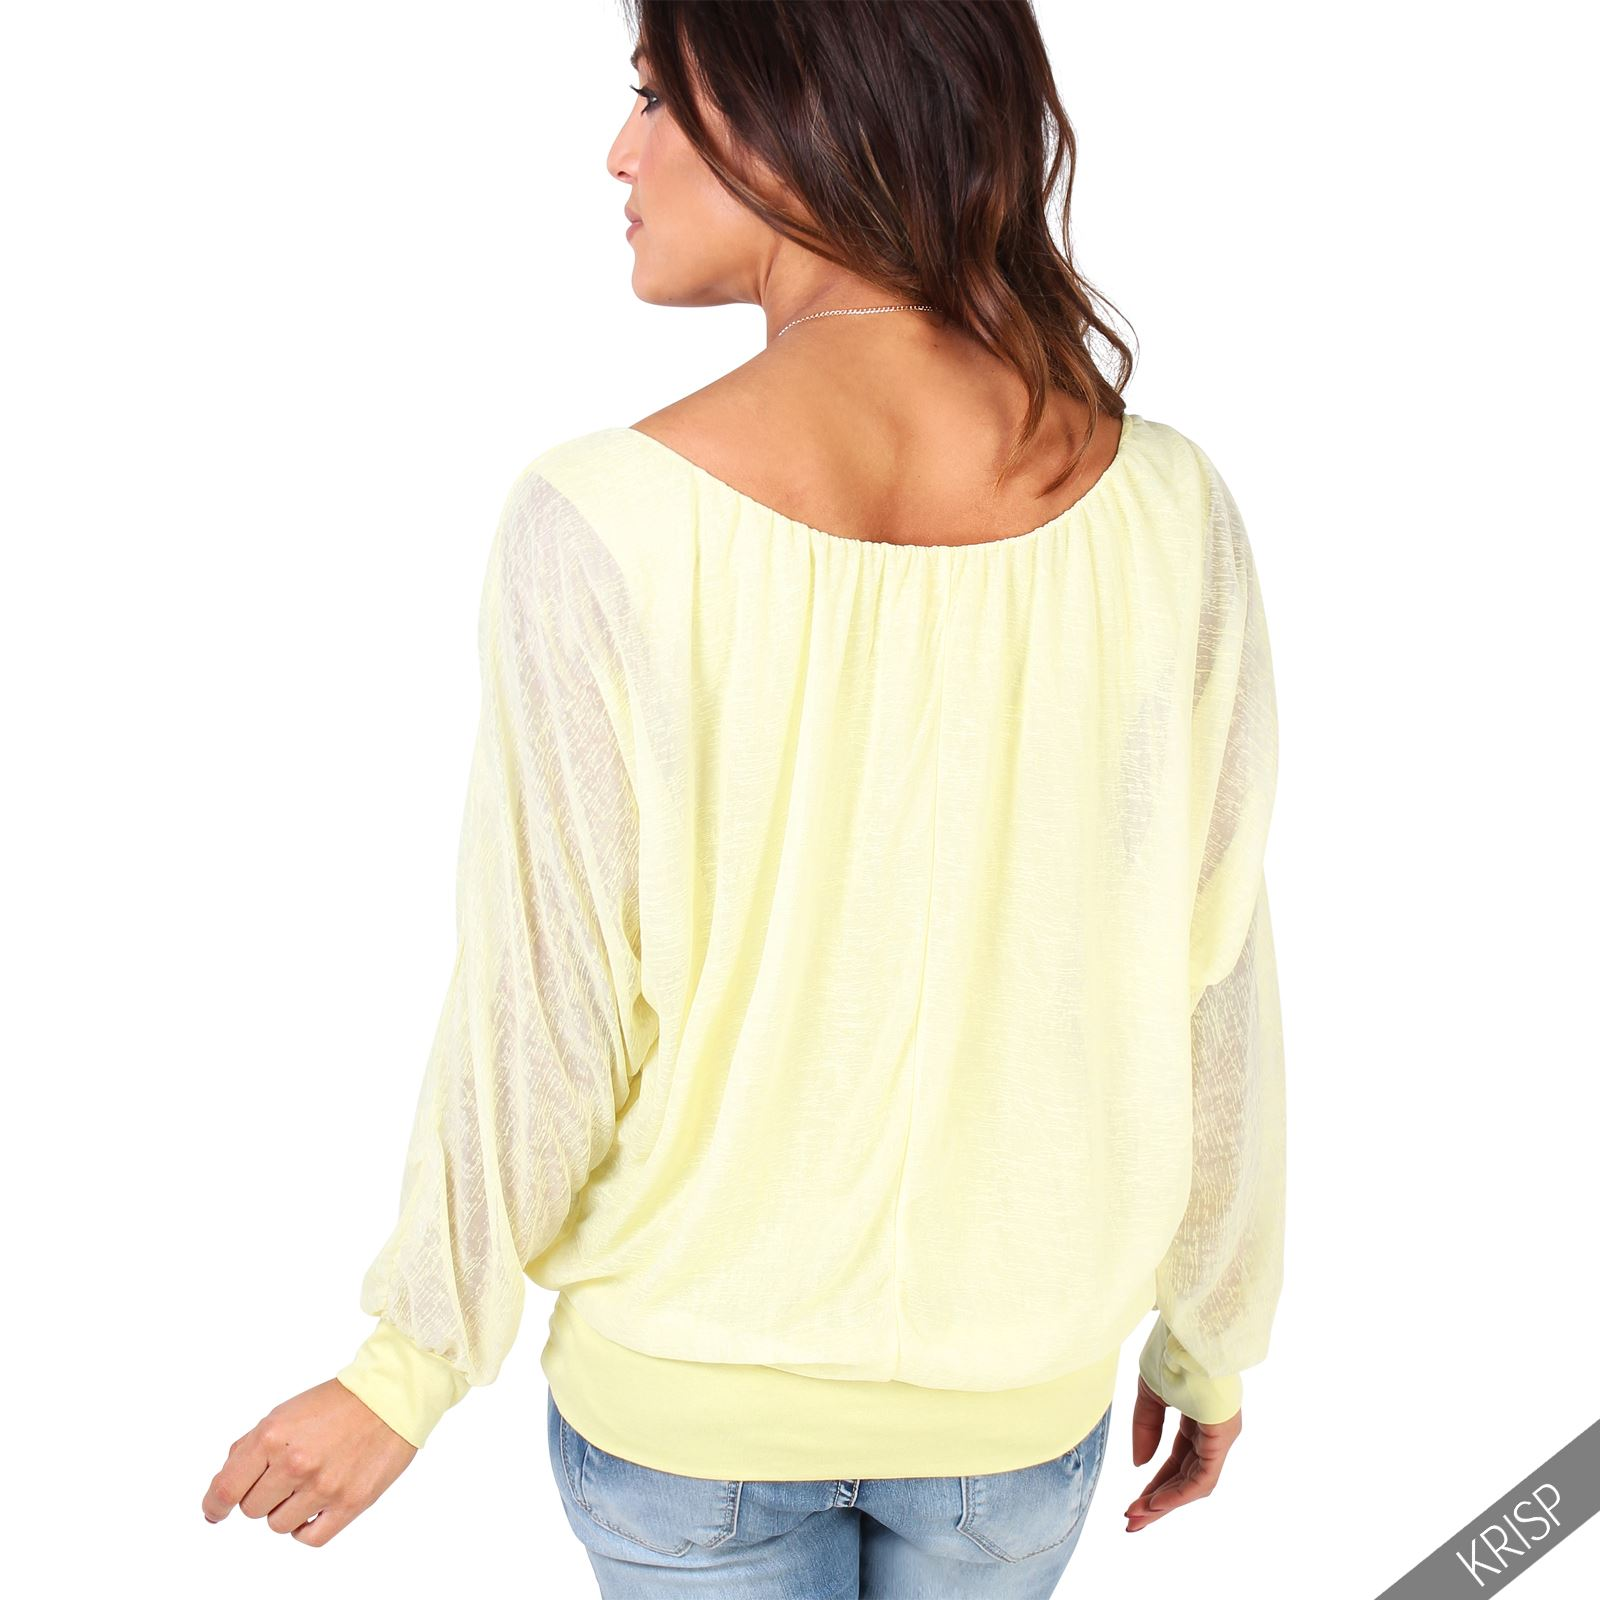 Womens Off Shoulder Blouse Batwing T shirt Baggy Top Chiffon Free Necklace